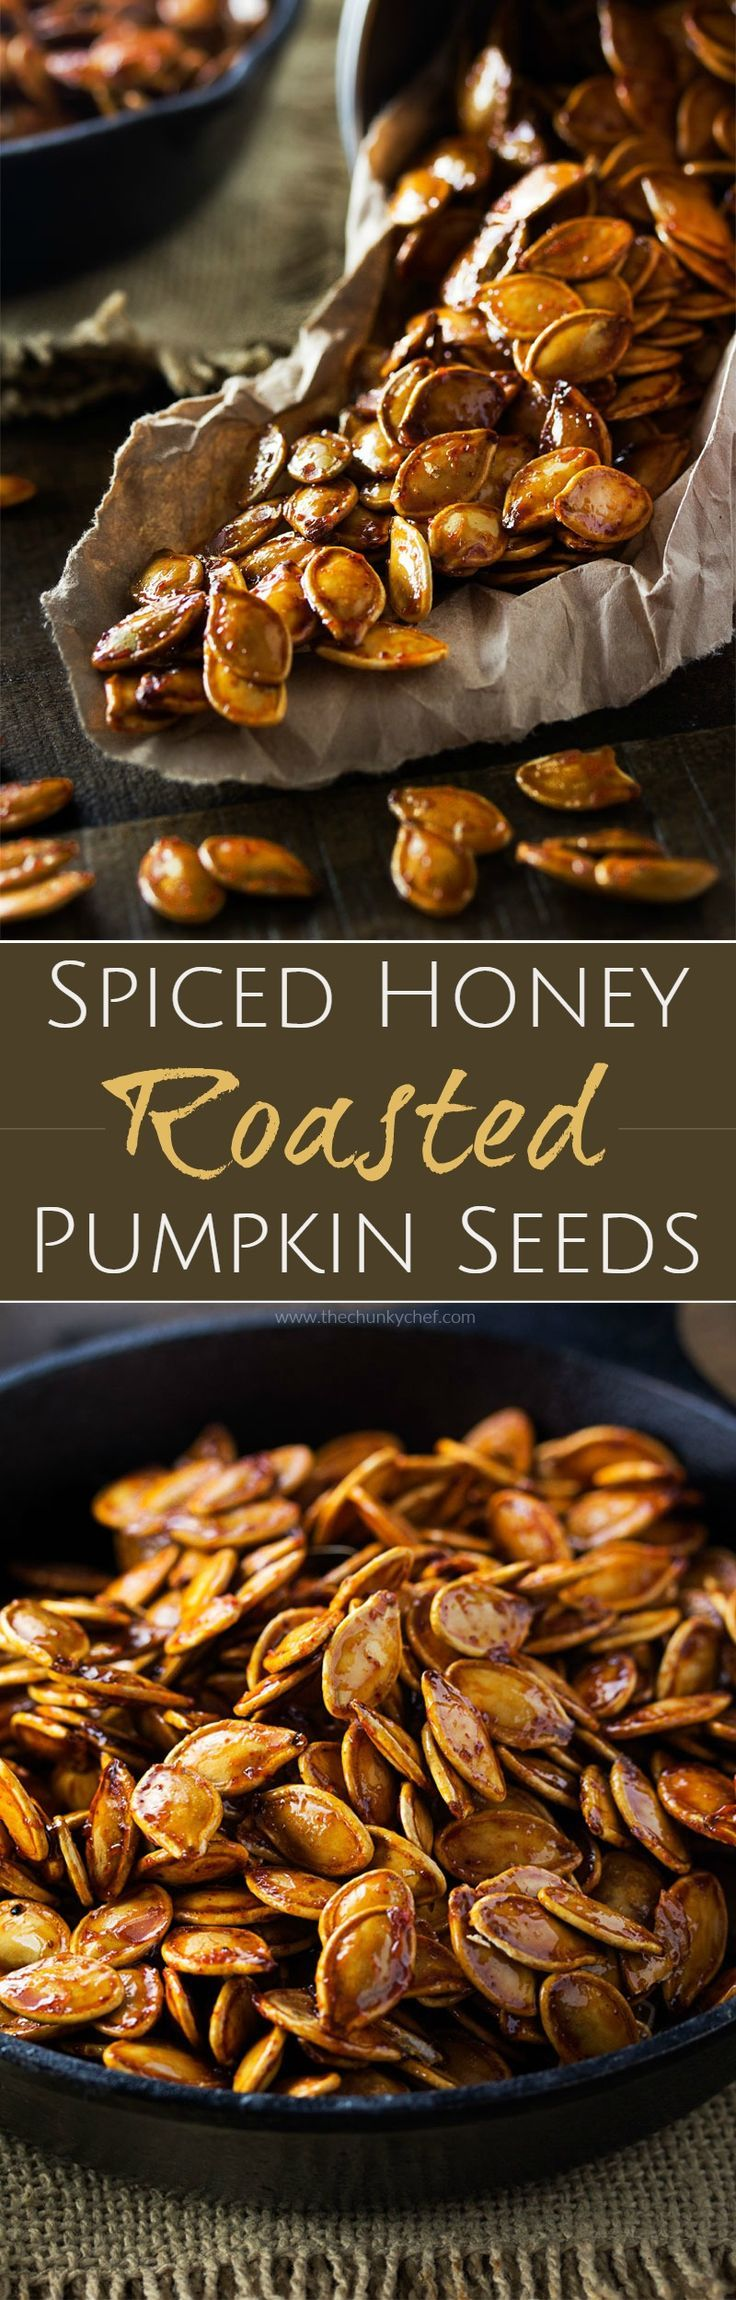 Spiced Honey Roasted Pumpkin Seeds | Waste not, want not... turn leftover pumpkins into a delicious treat! These roasted pumpkin seeds are deliciously savory, with hints of spice and honey!